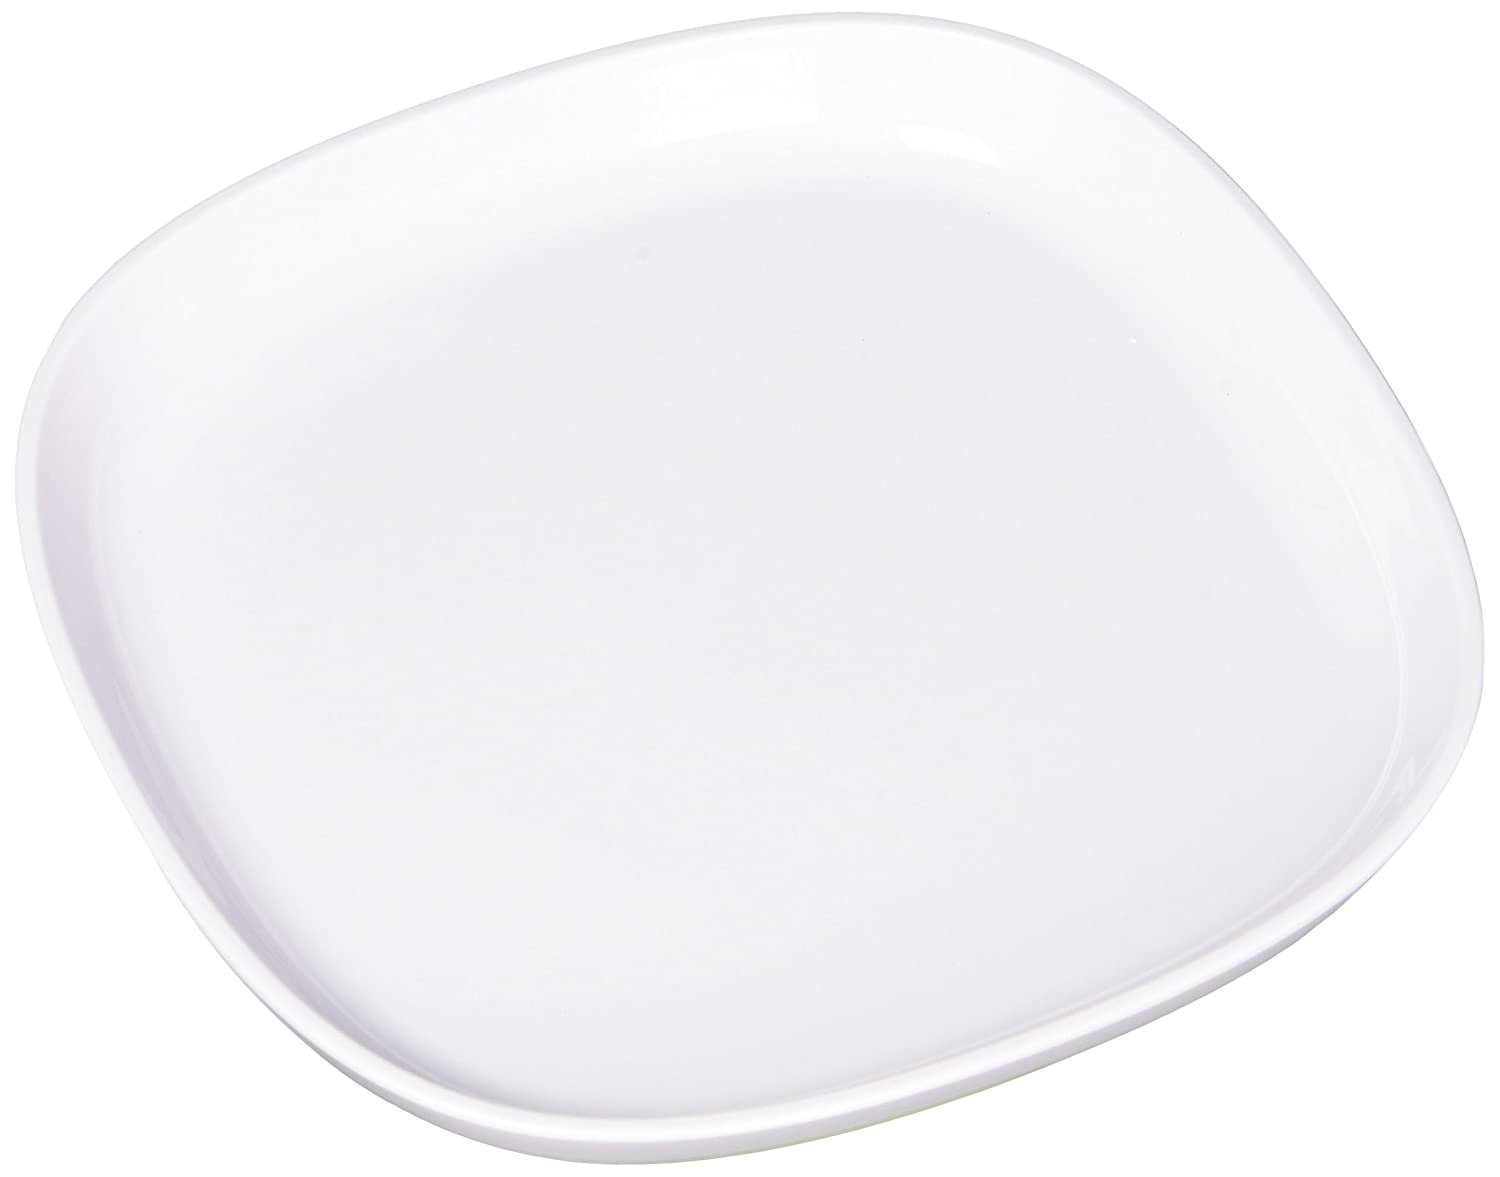 dishwasher safe 2000561 4moms high chair magnetic feeding plate